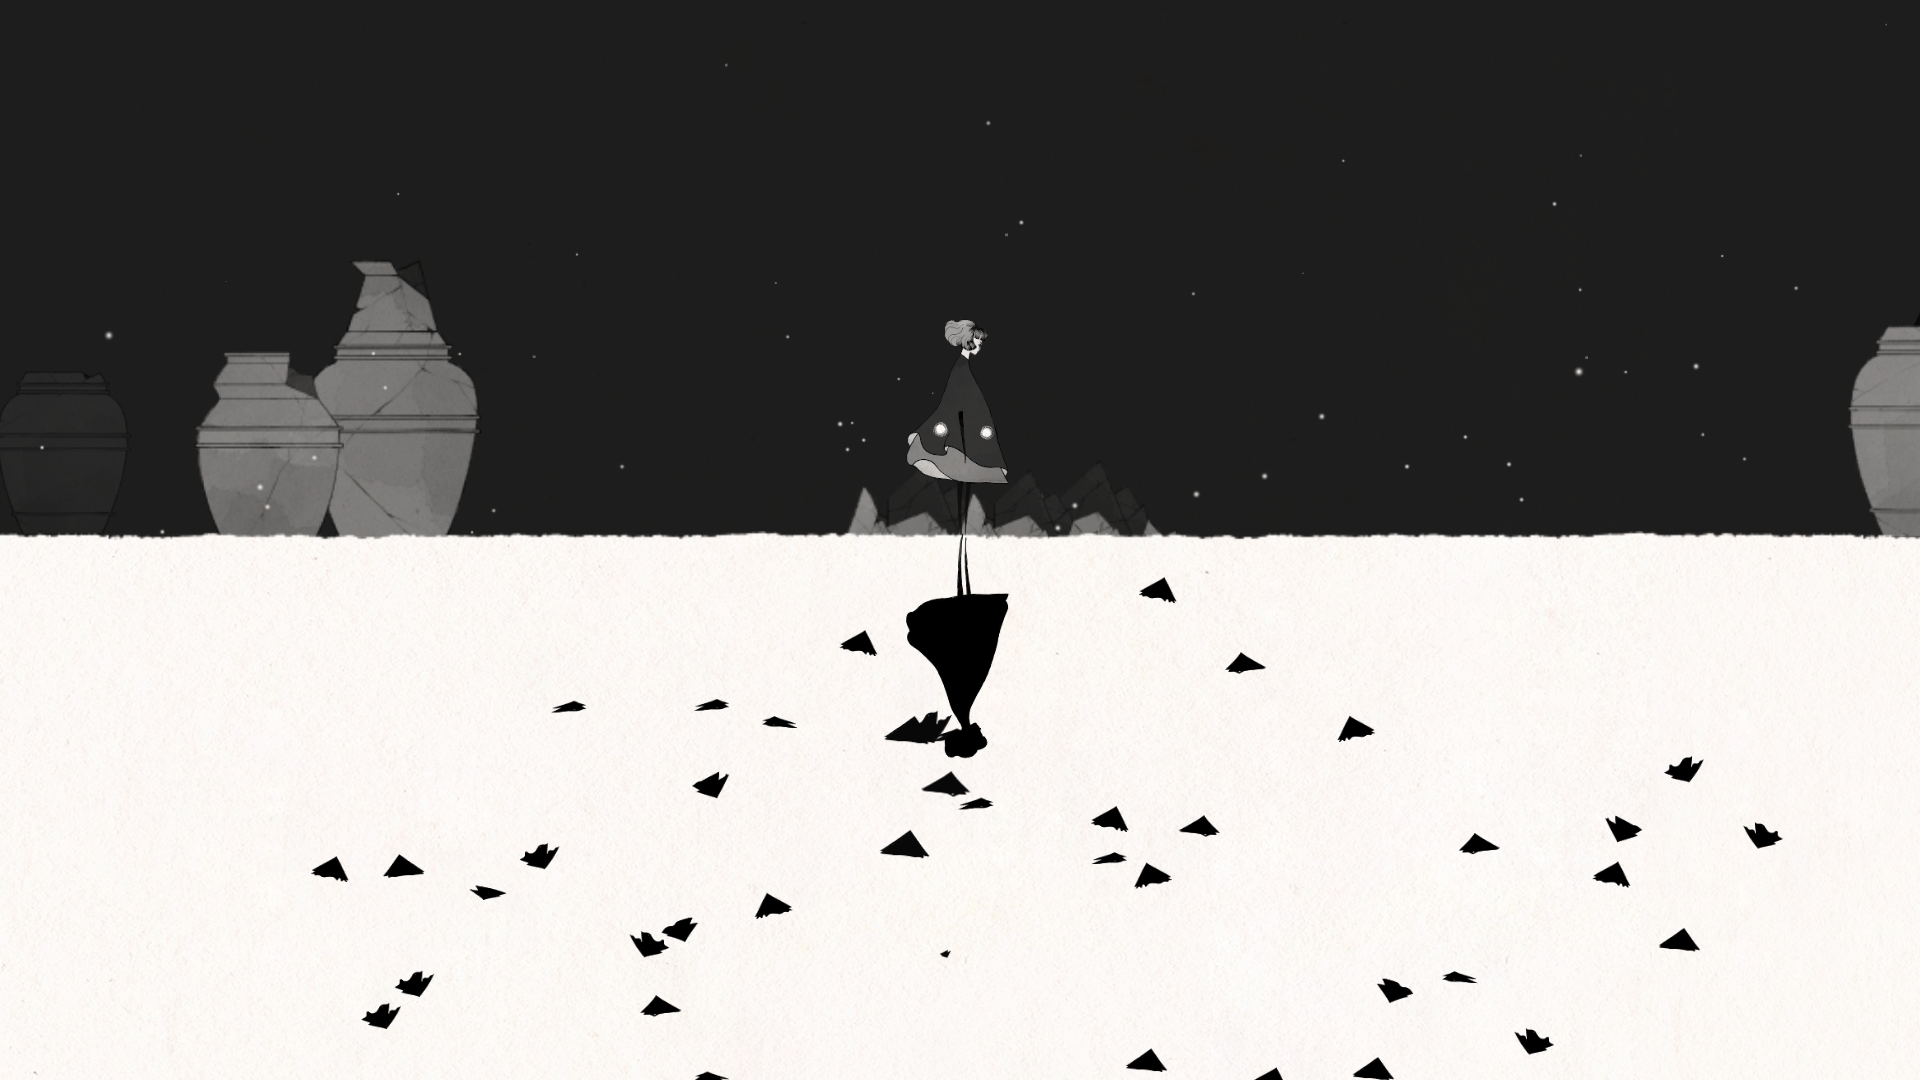 Black and White contrast in the game Gris